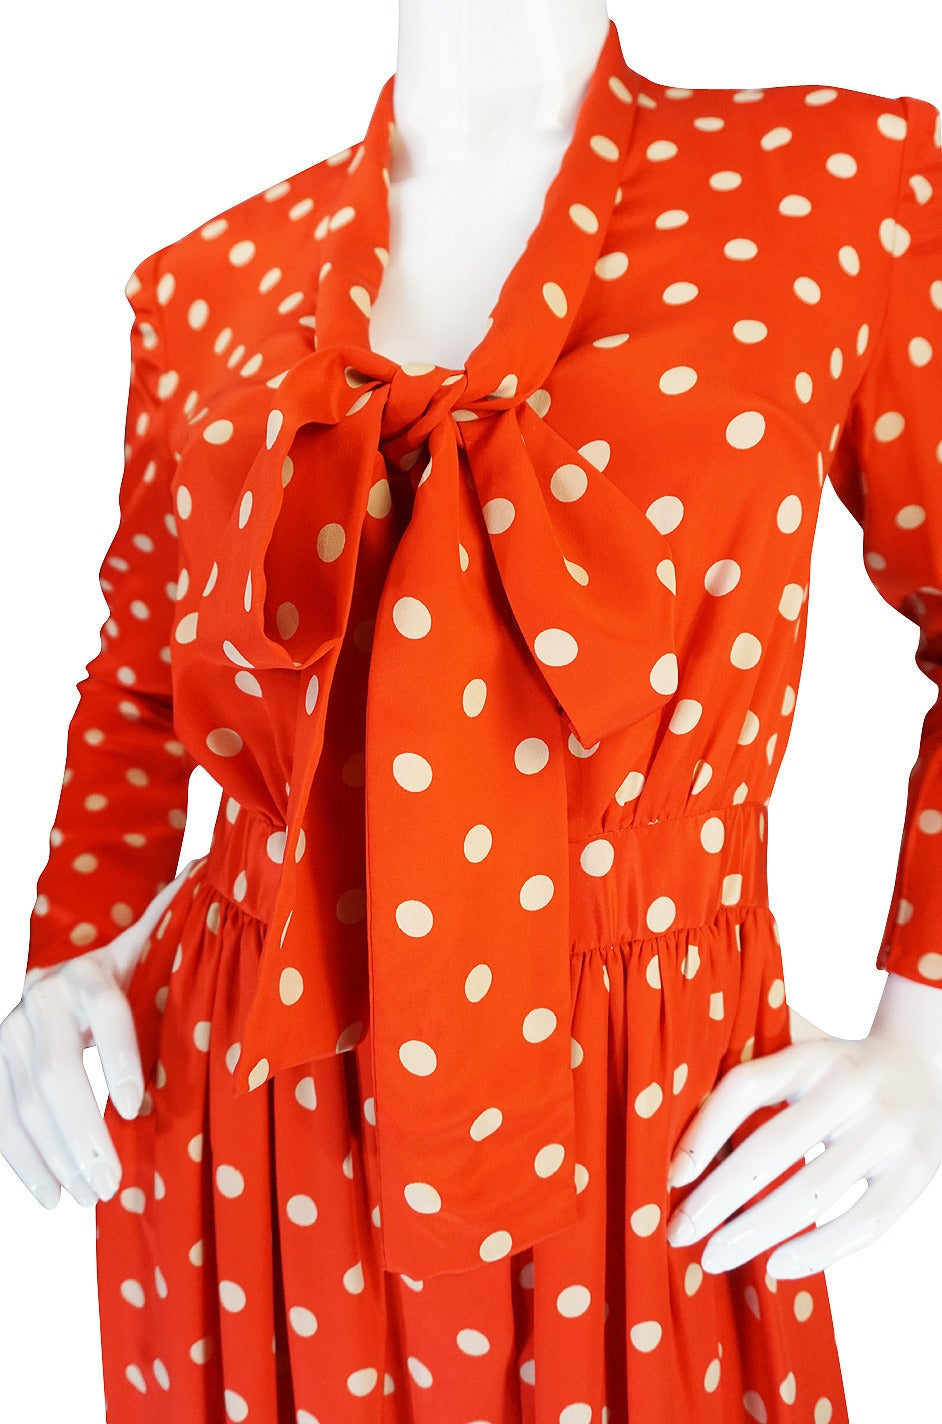 c1972-76 Norell Tassell Dotted Red Maxi Dress For Sale 3